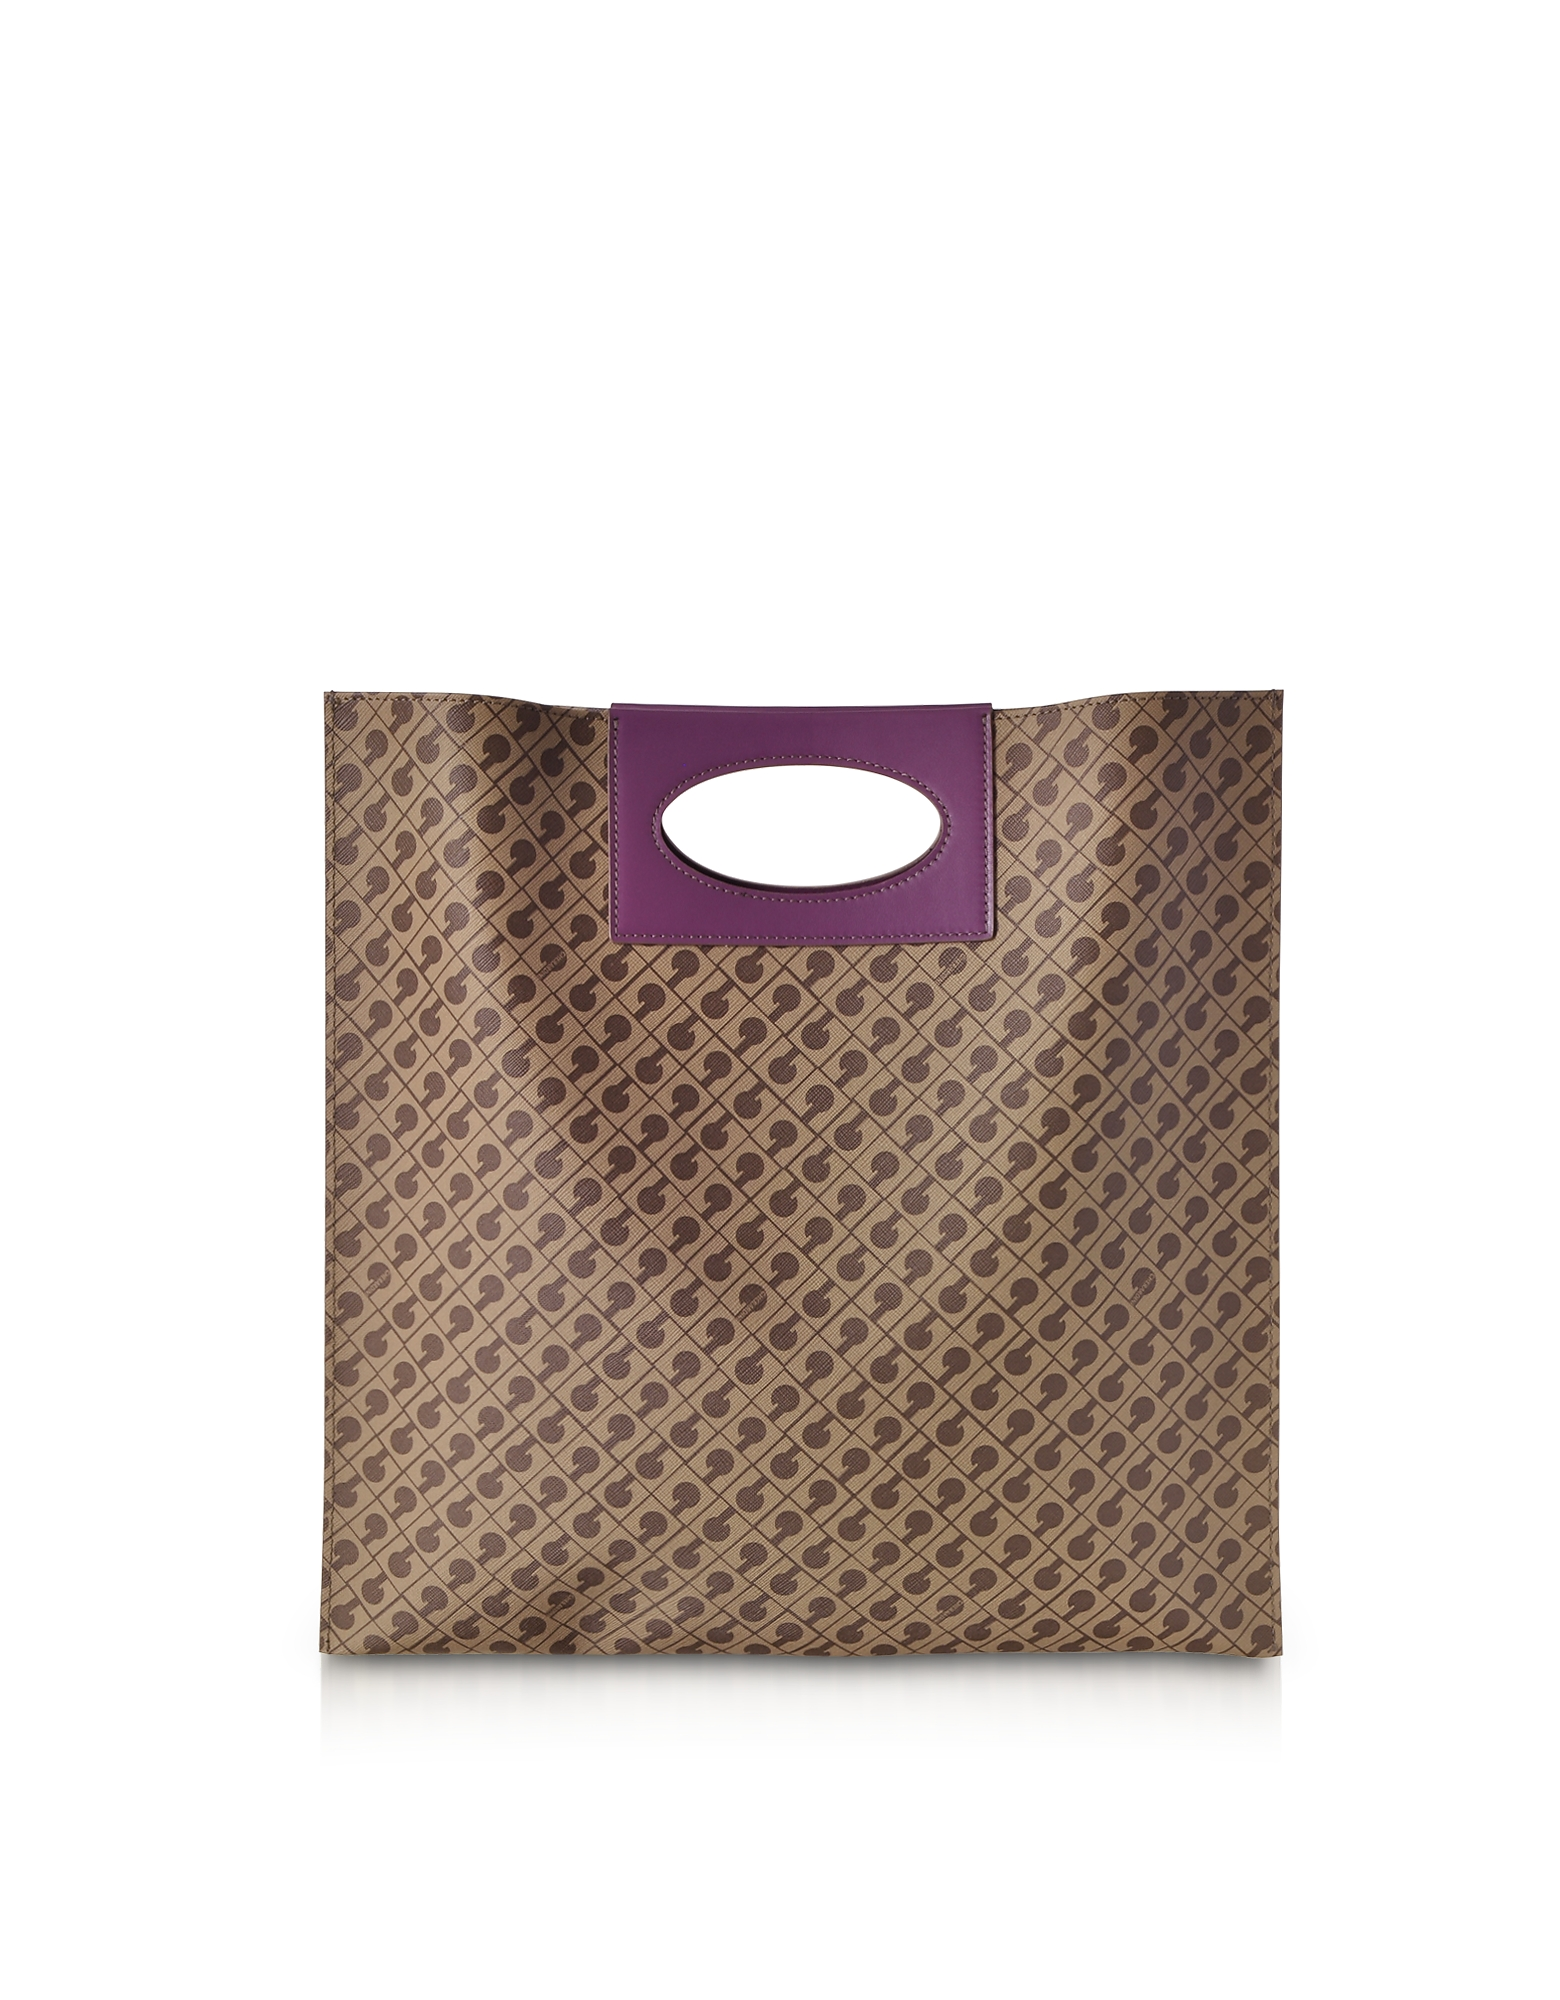 Image of Gherardini Designer Handbags, Millerighe Mystic Purple Signature Flat Tote Bag